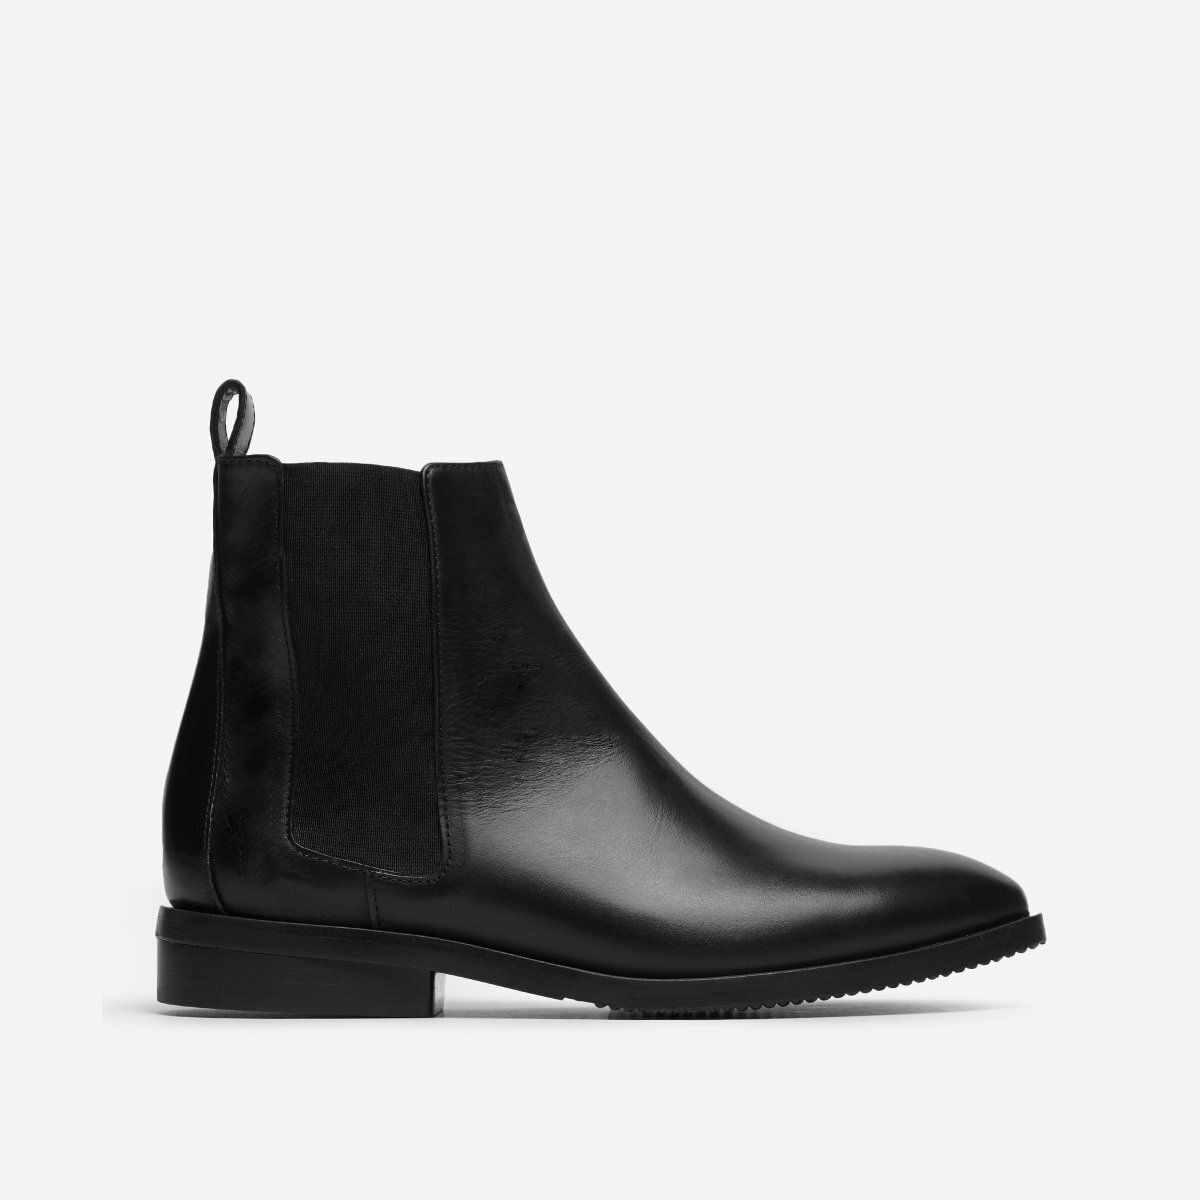 Ankle Boots For Fall 2019 That Go With